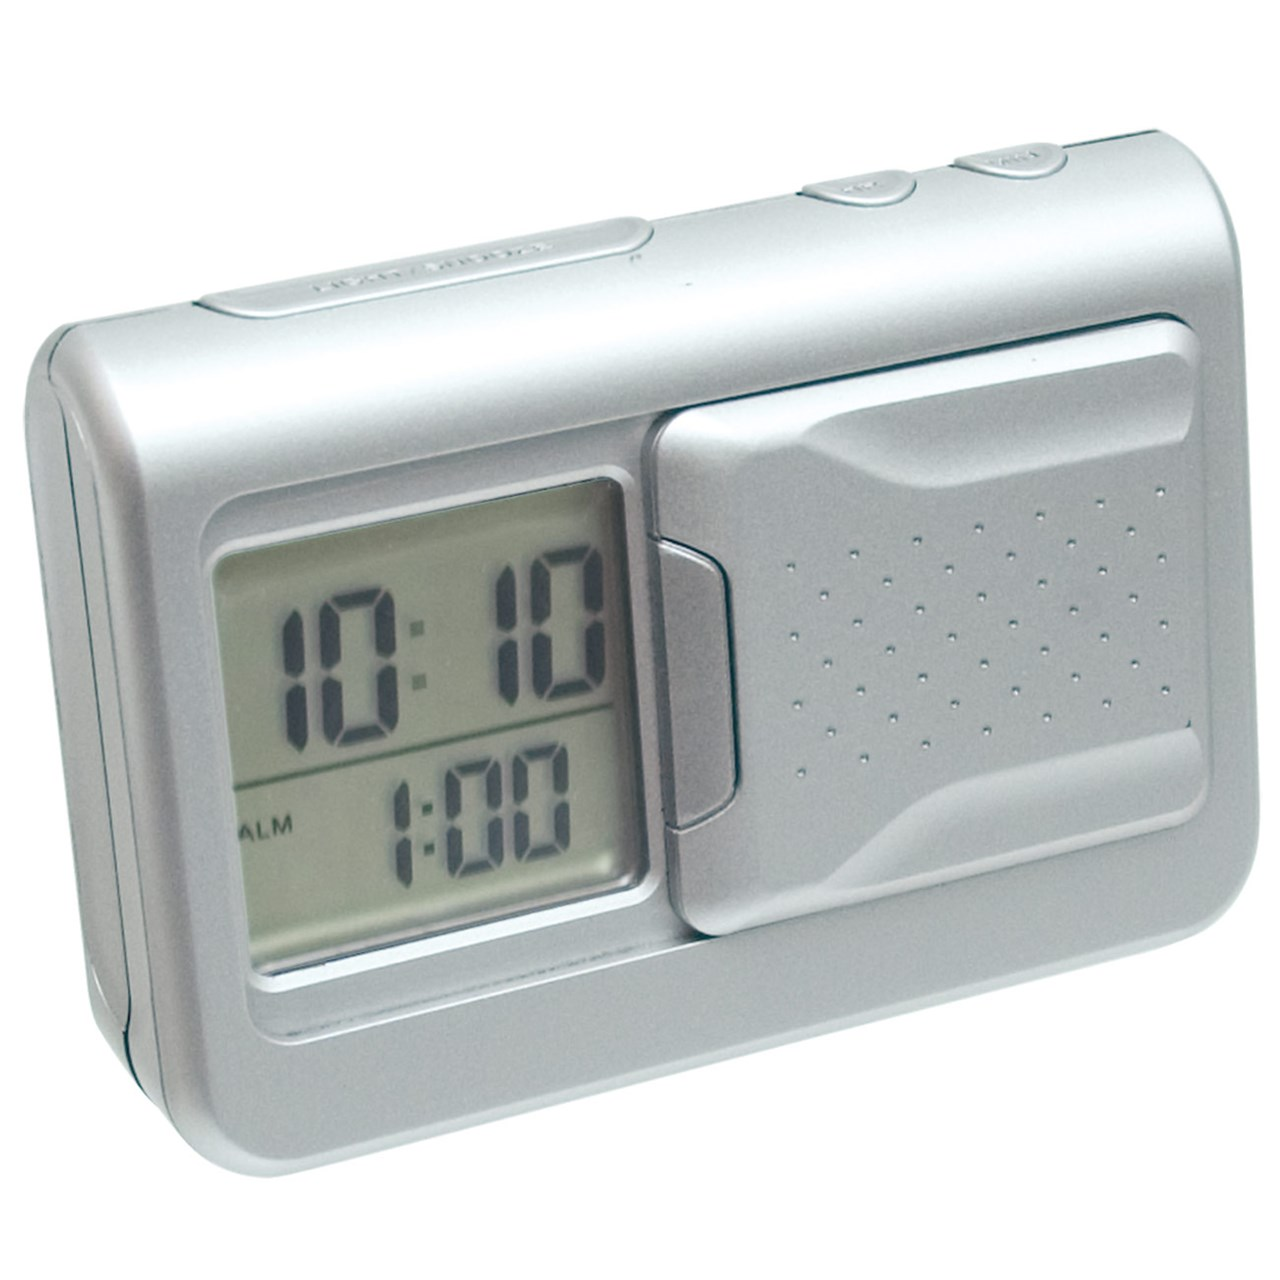 Shake-N-Lite Vibrating Alarm Clock with Backlight